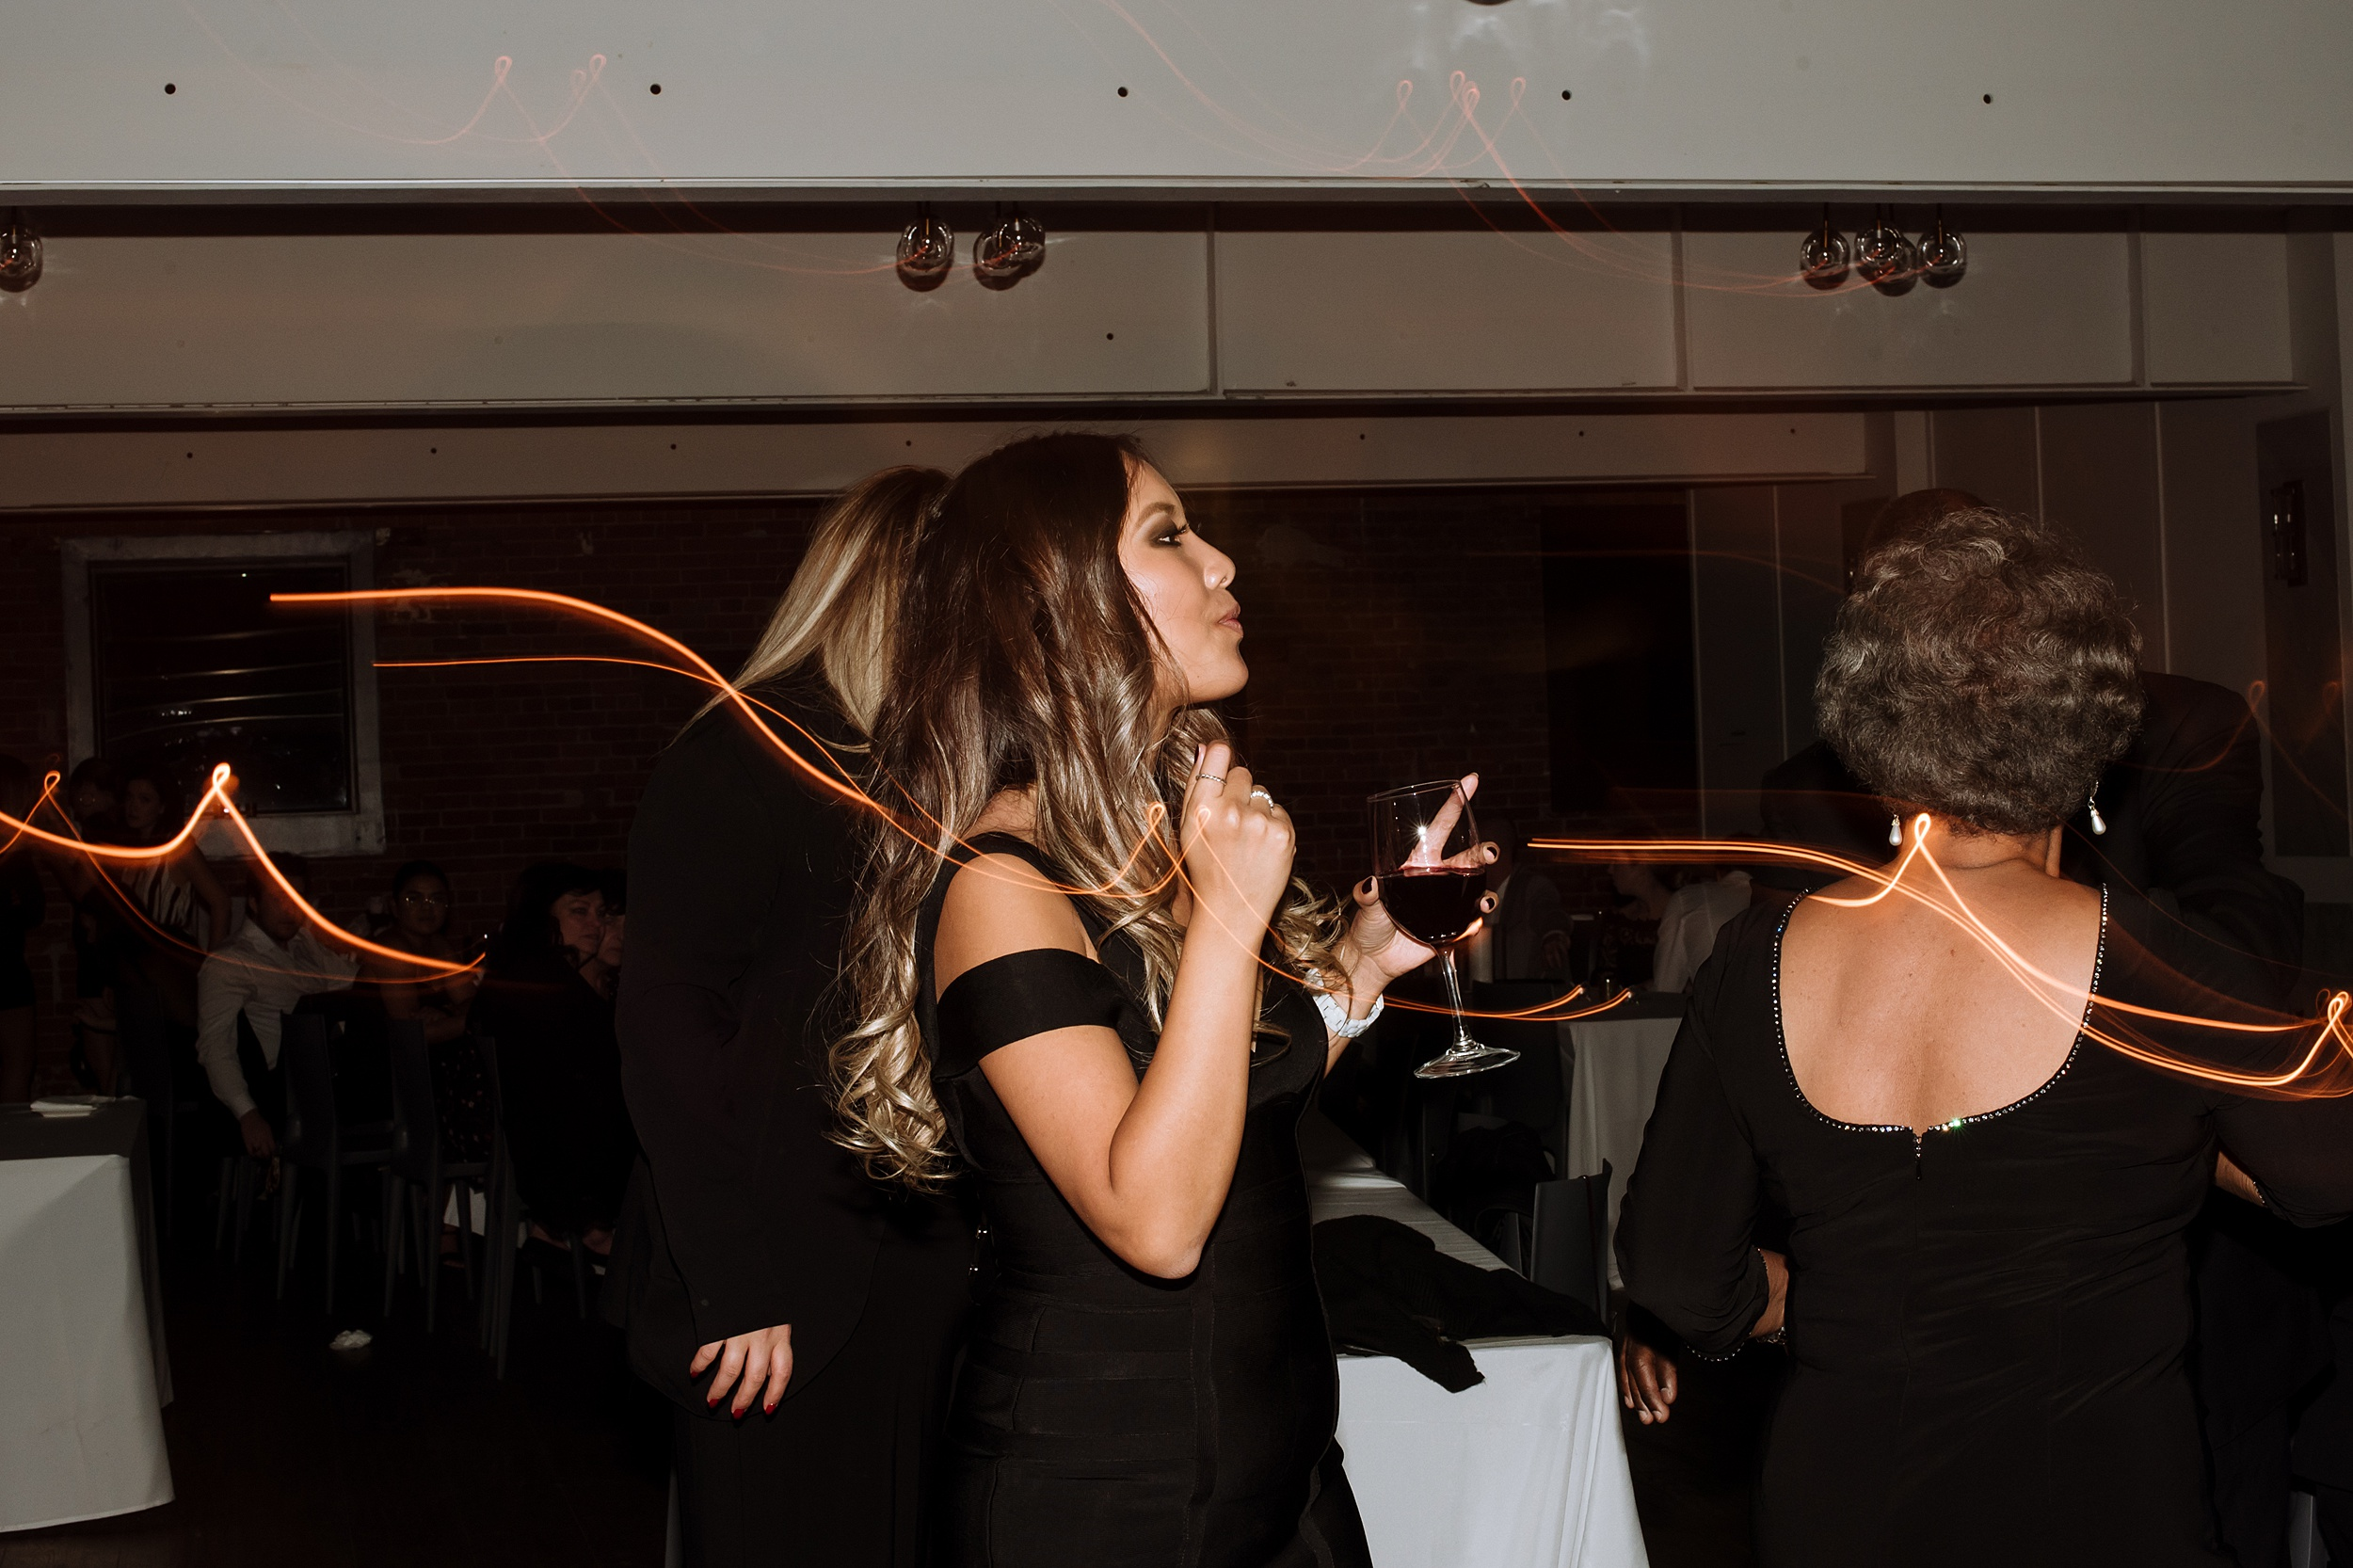 Broadview_Hotel_Wedding_Toronto_Photographer_0060.jpg